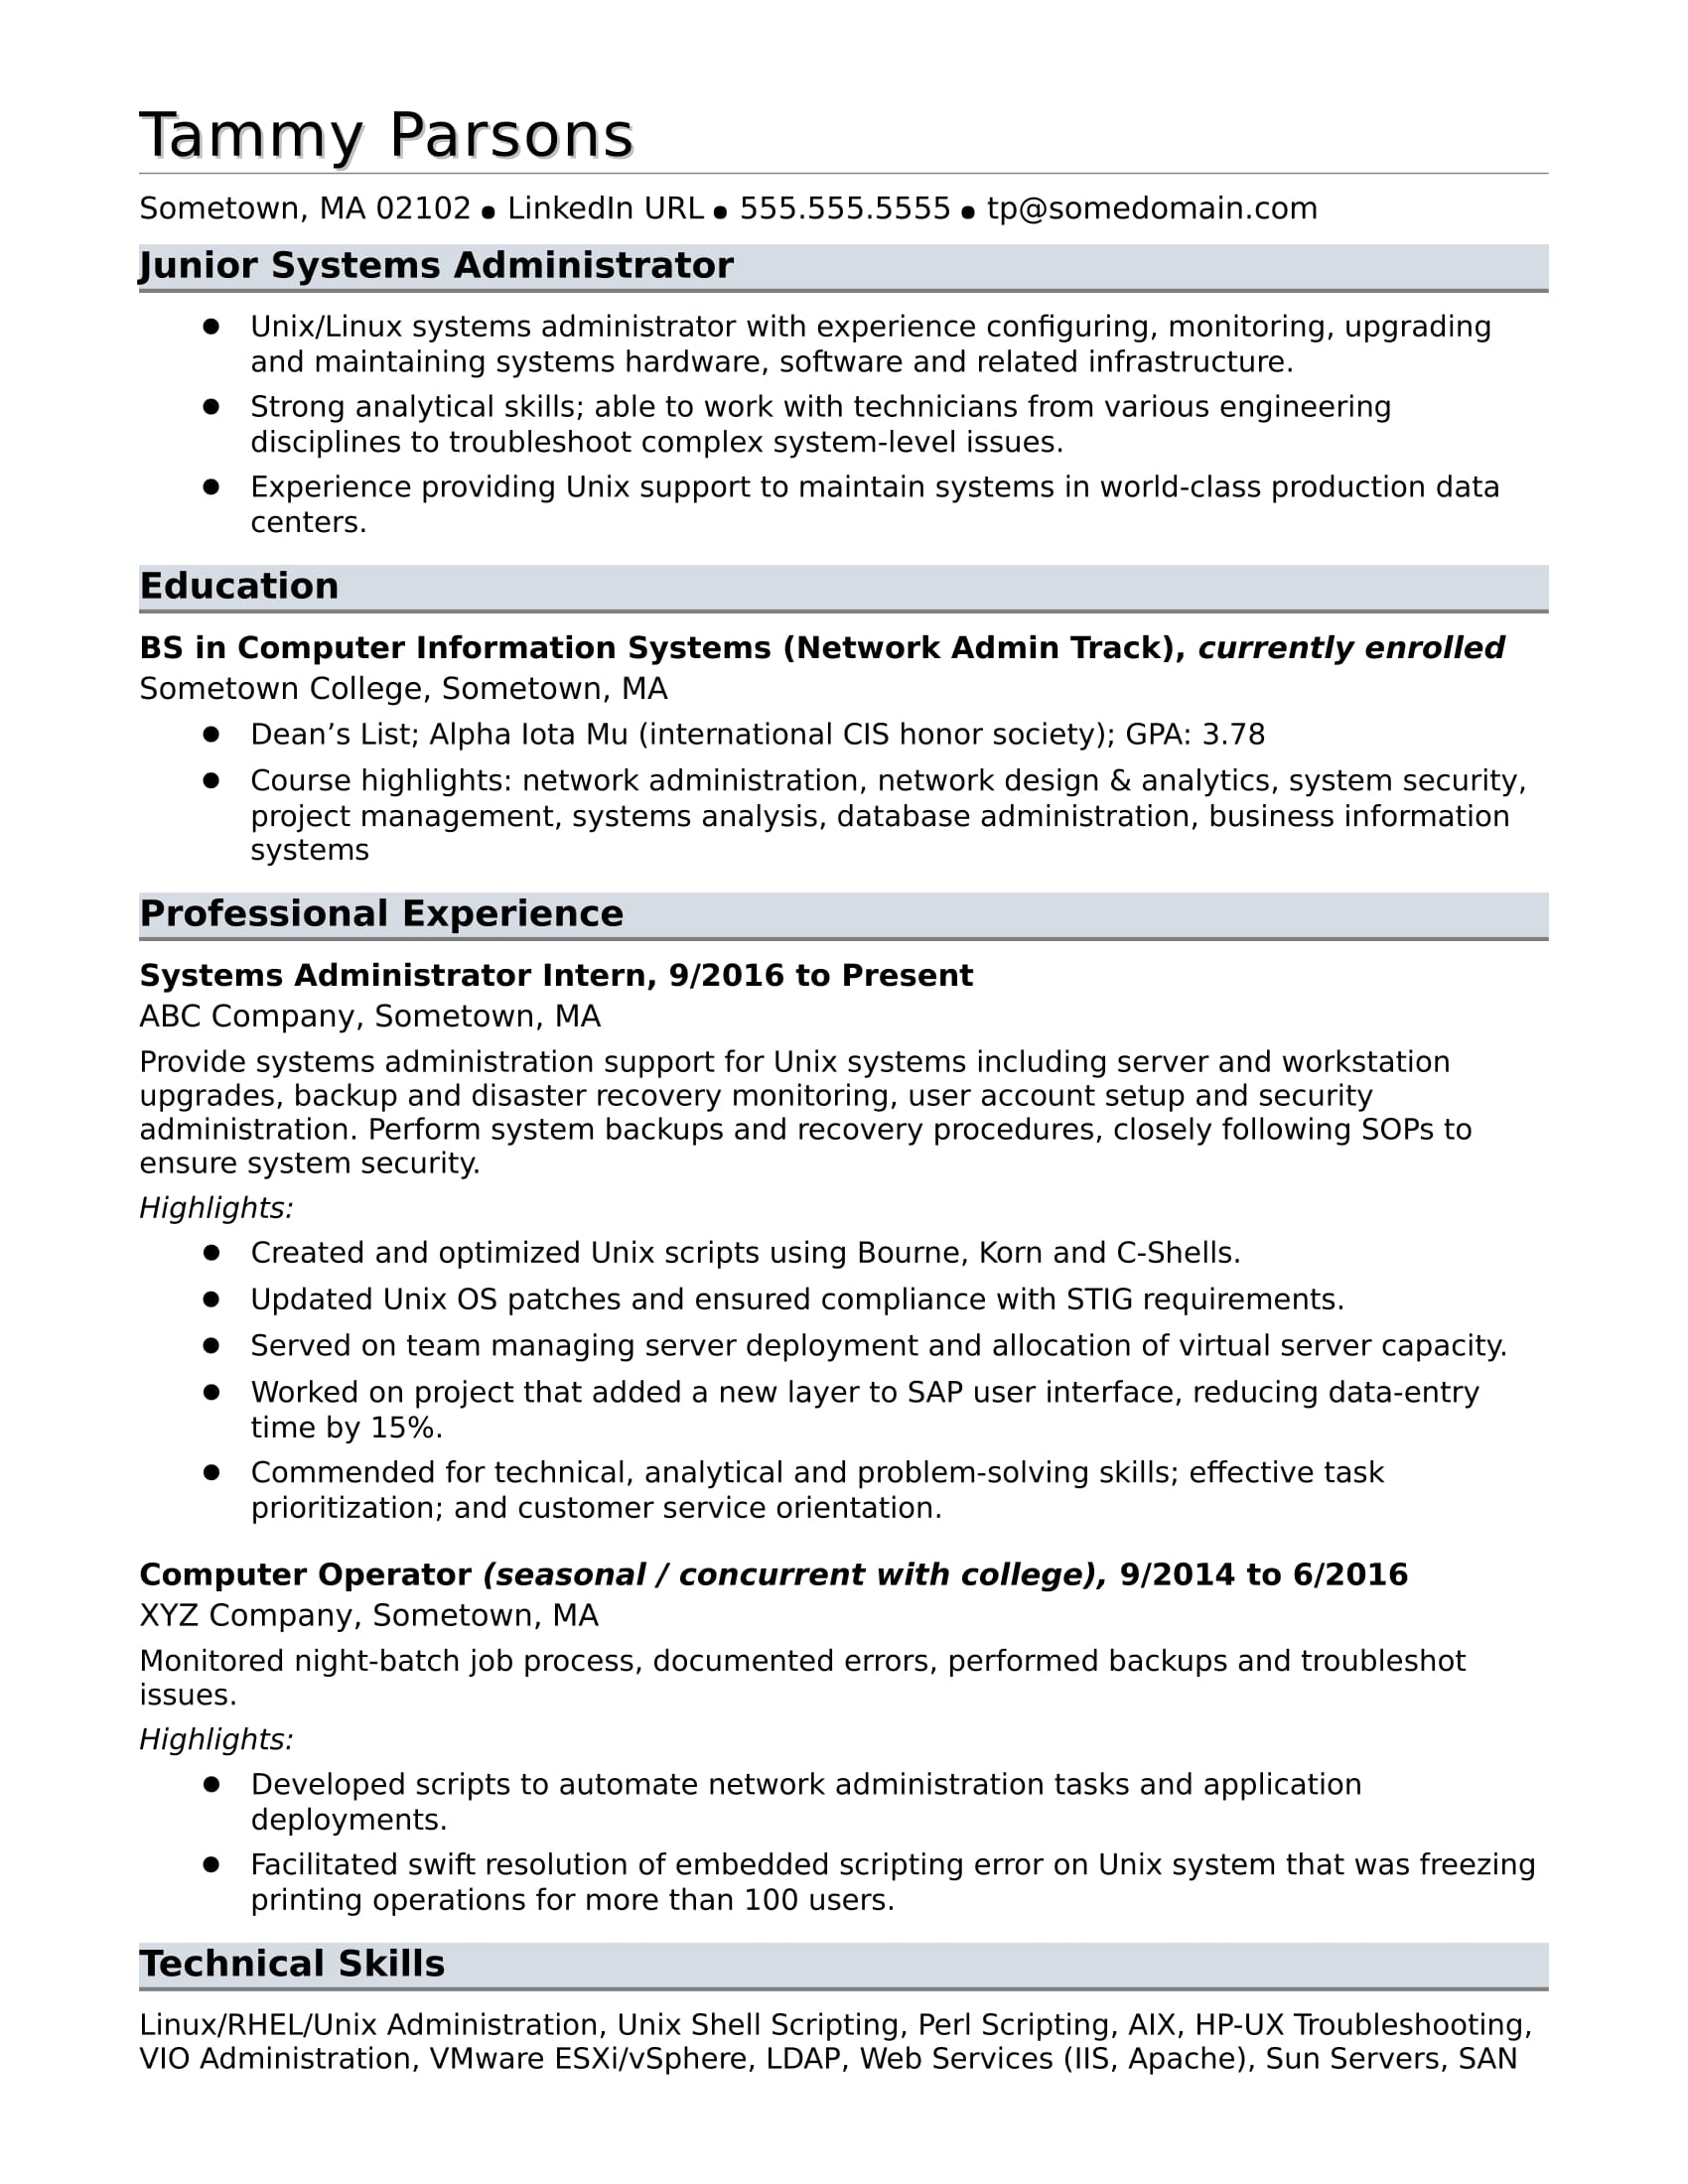 Sample Resume For An Entry Level Systems Administrator  Sample Entry Level Resume